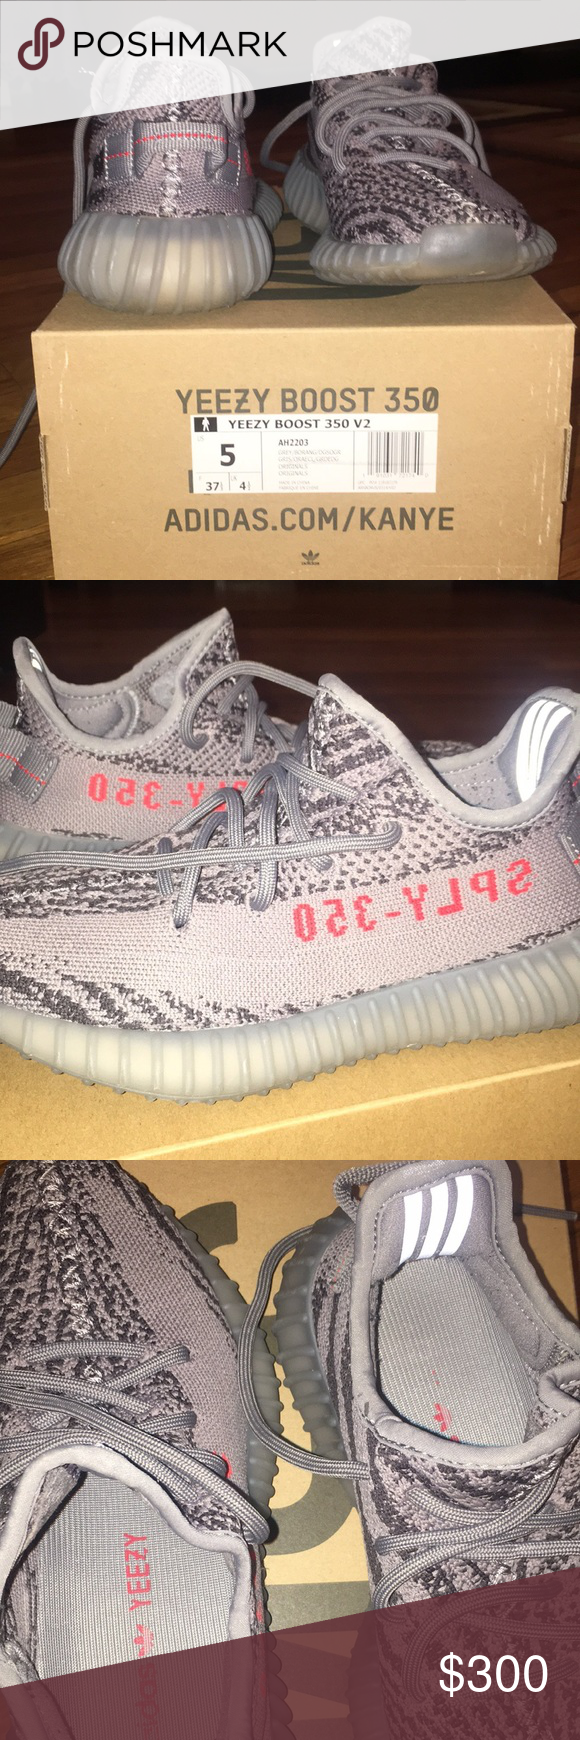 26661cdcddc Yeezy boost 350. V2 Beluga Used Yeezy 350 (will be cleaned before shipped  out